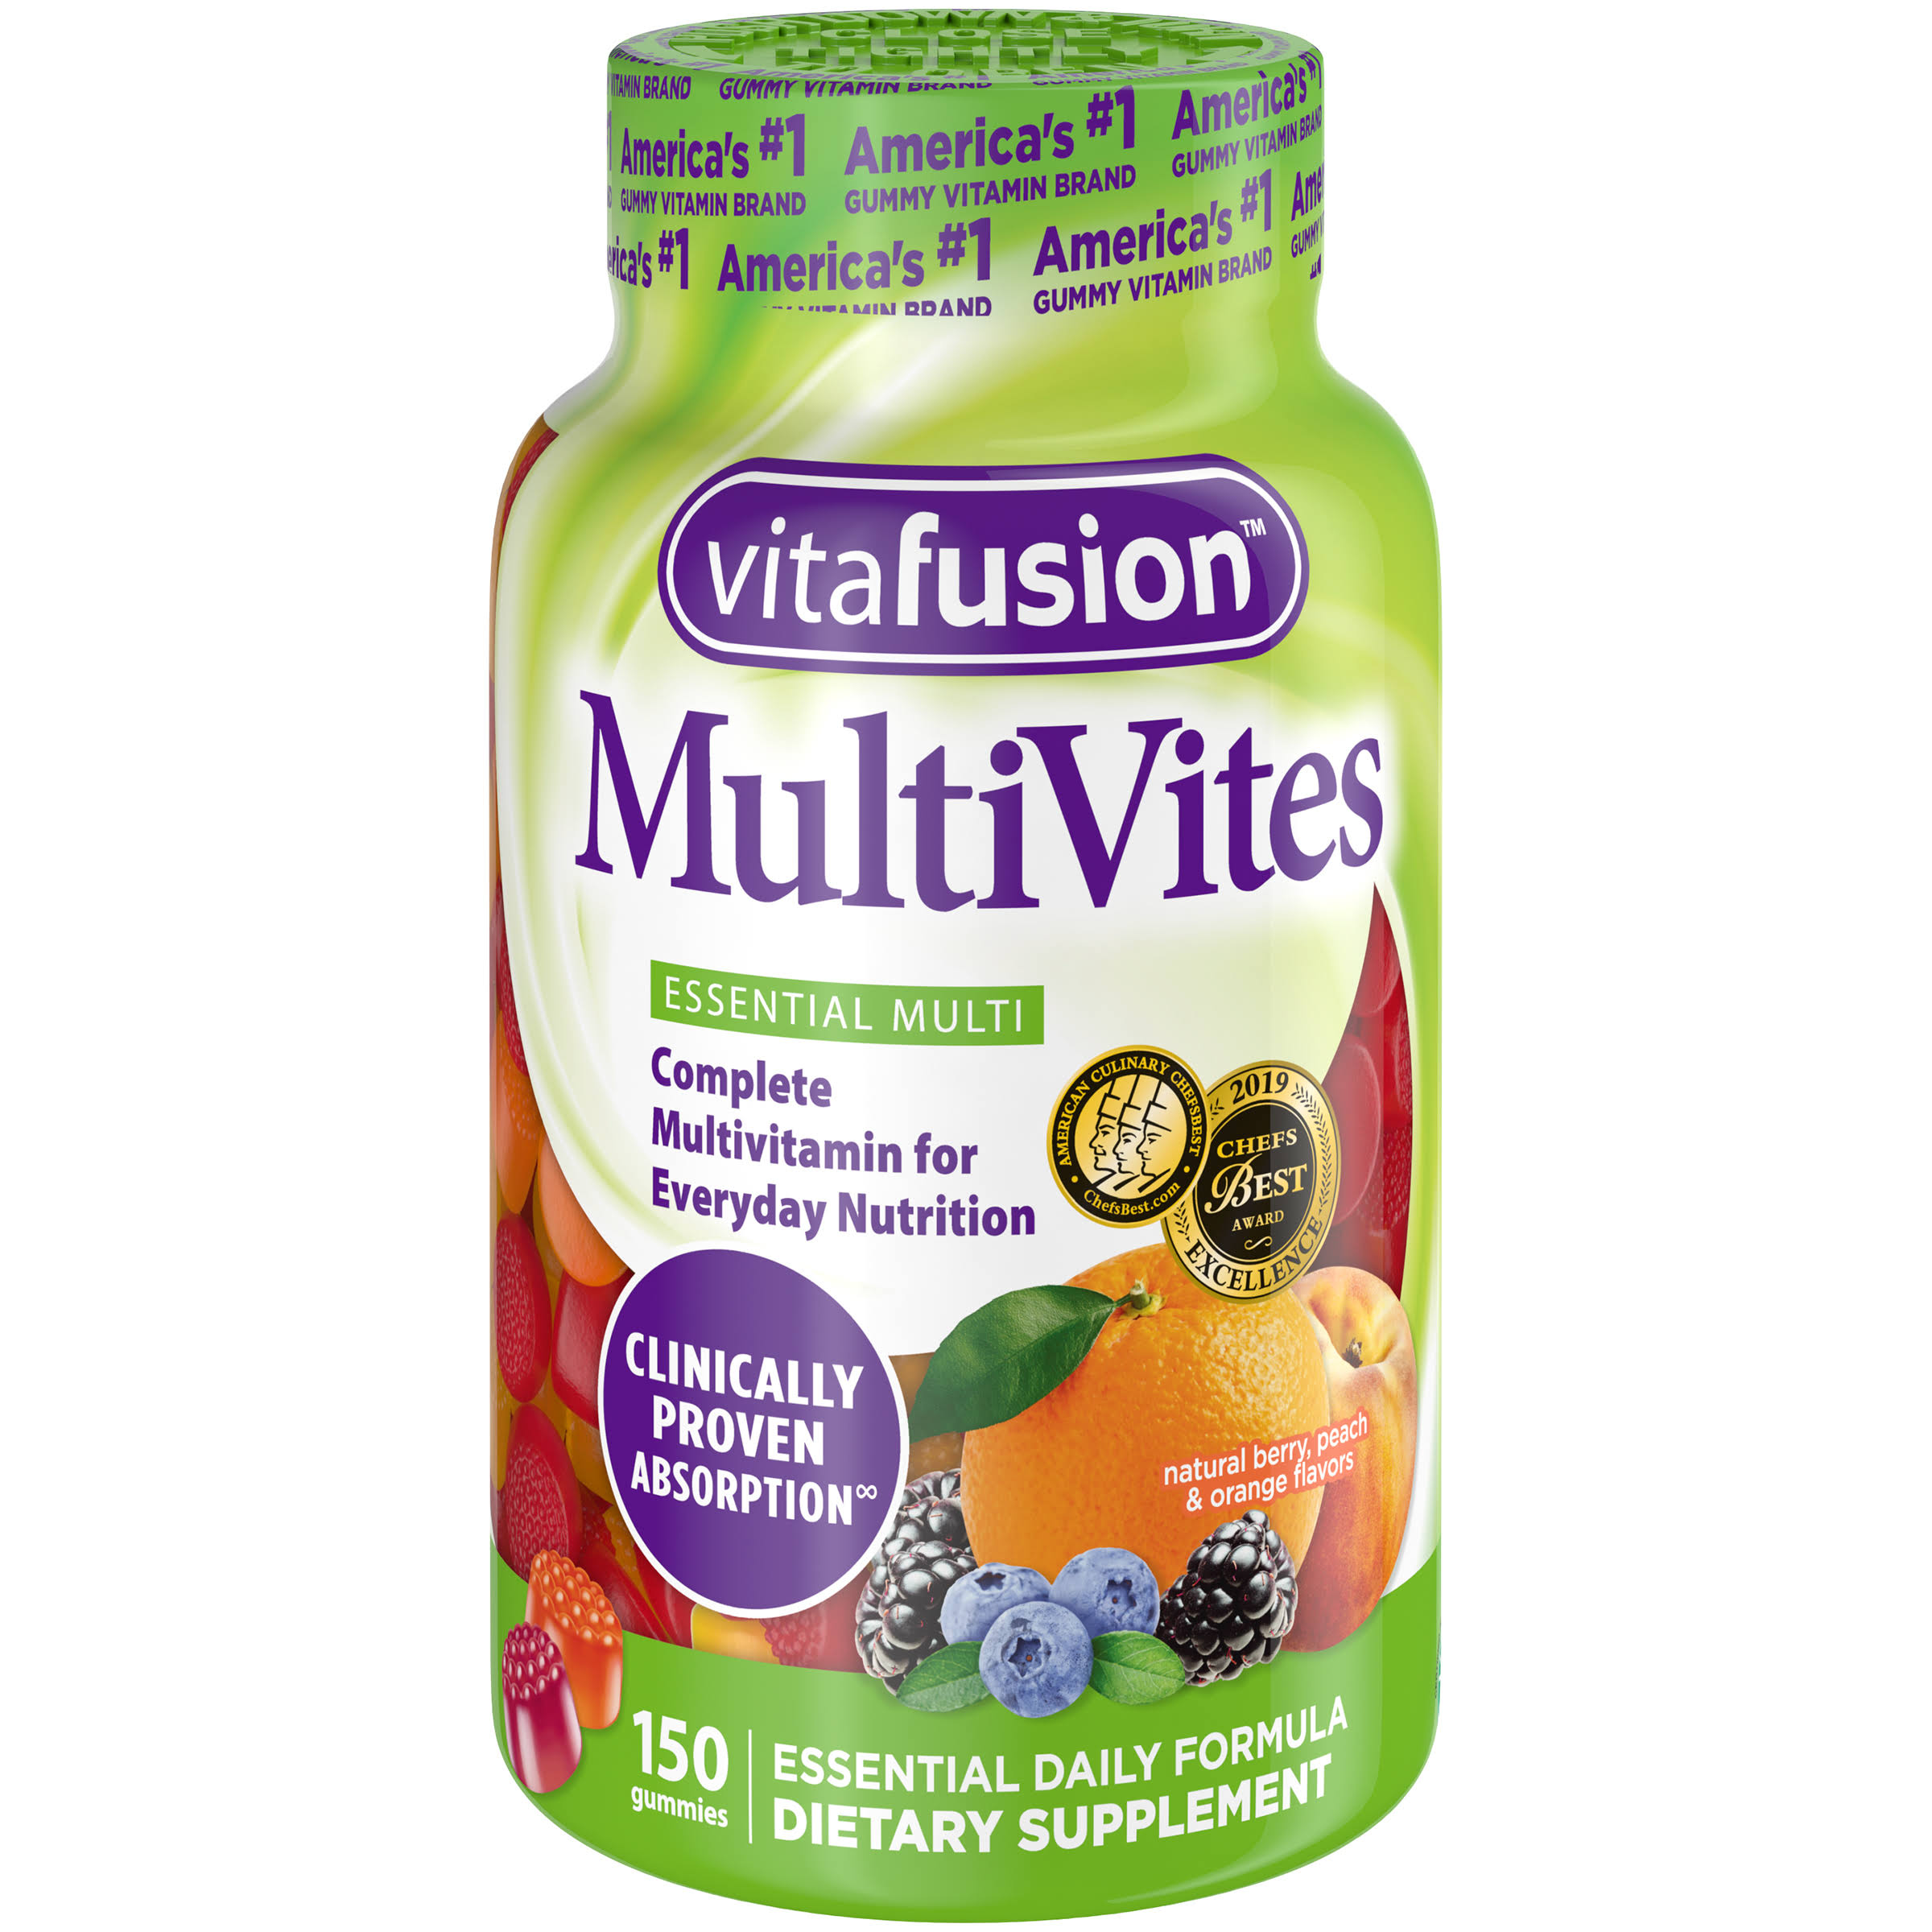 Vitafusion Multi-vite Gummy Vitamins For Adults - 150ct